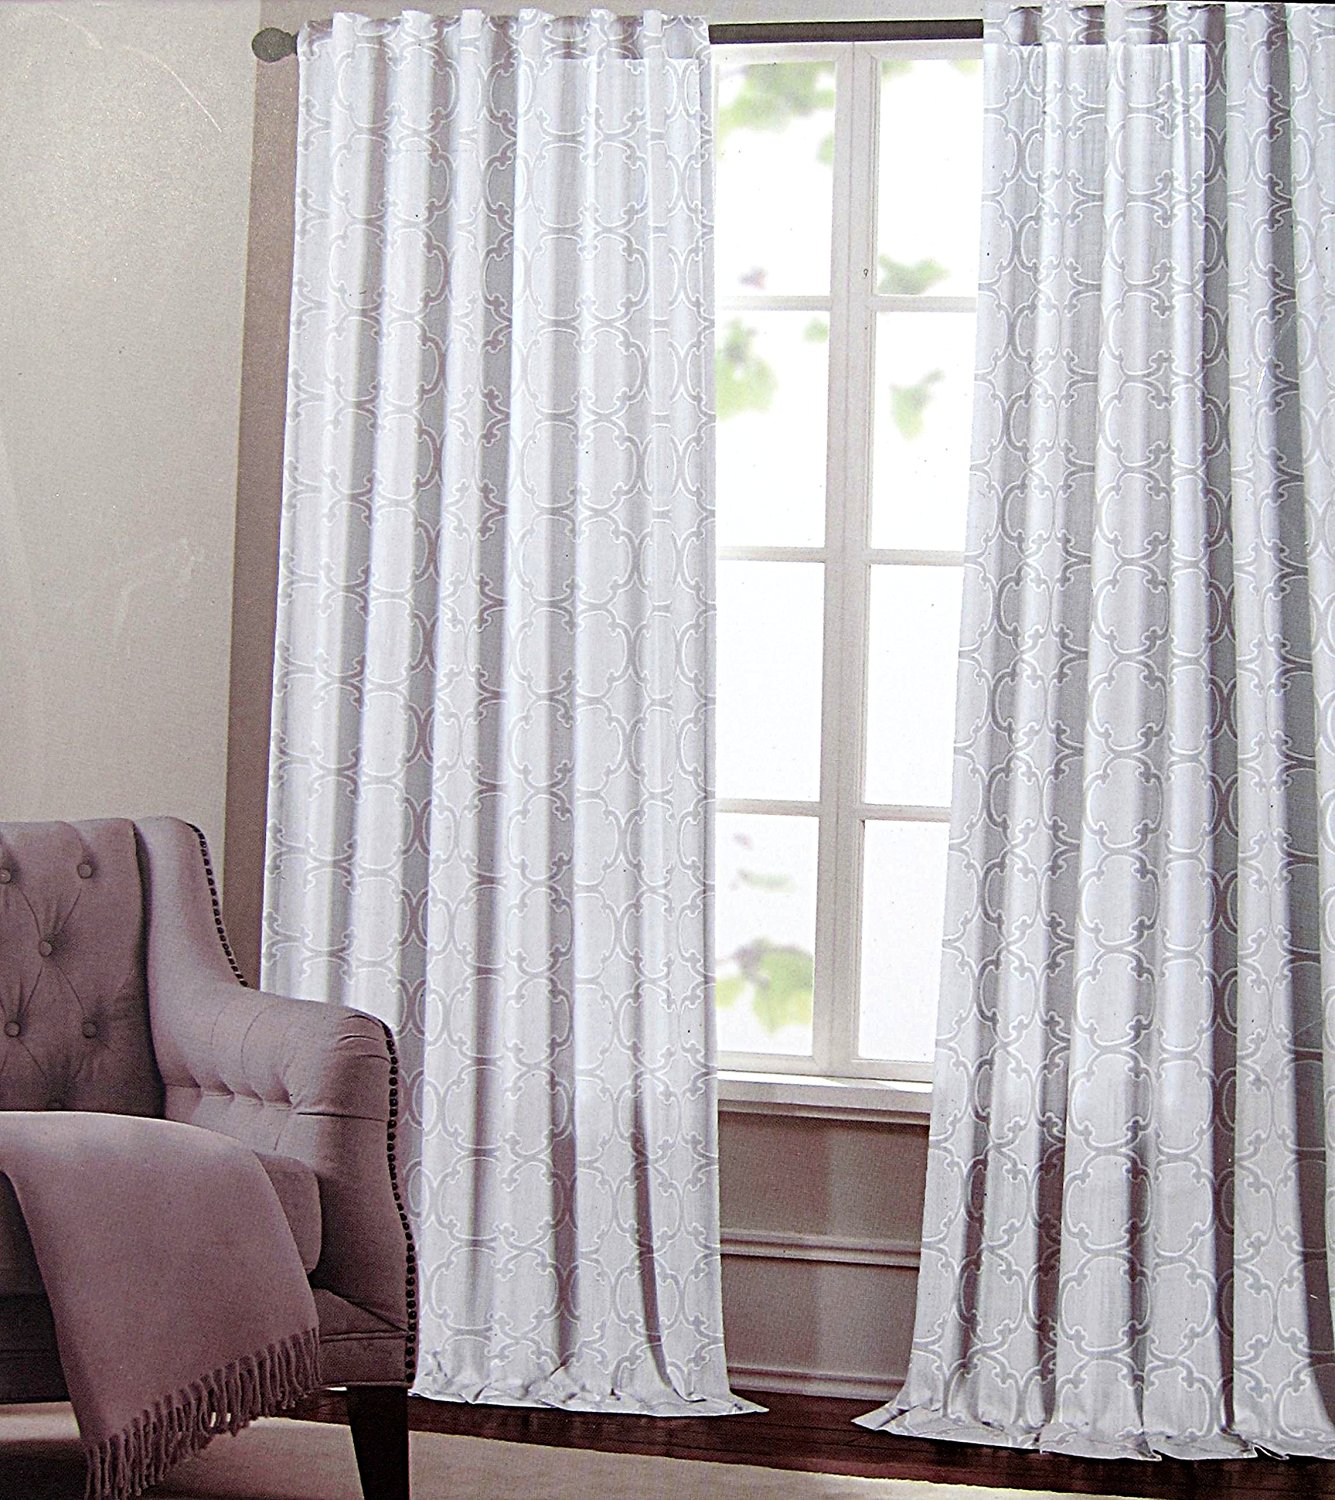 Get Quotations Max Studio Set Of 2 Window Curtains Panels Drapes Moroccan Tiles Lattice 52 By